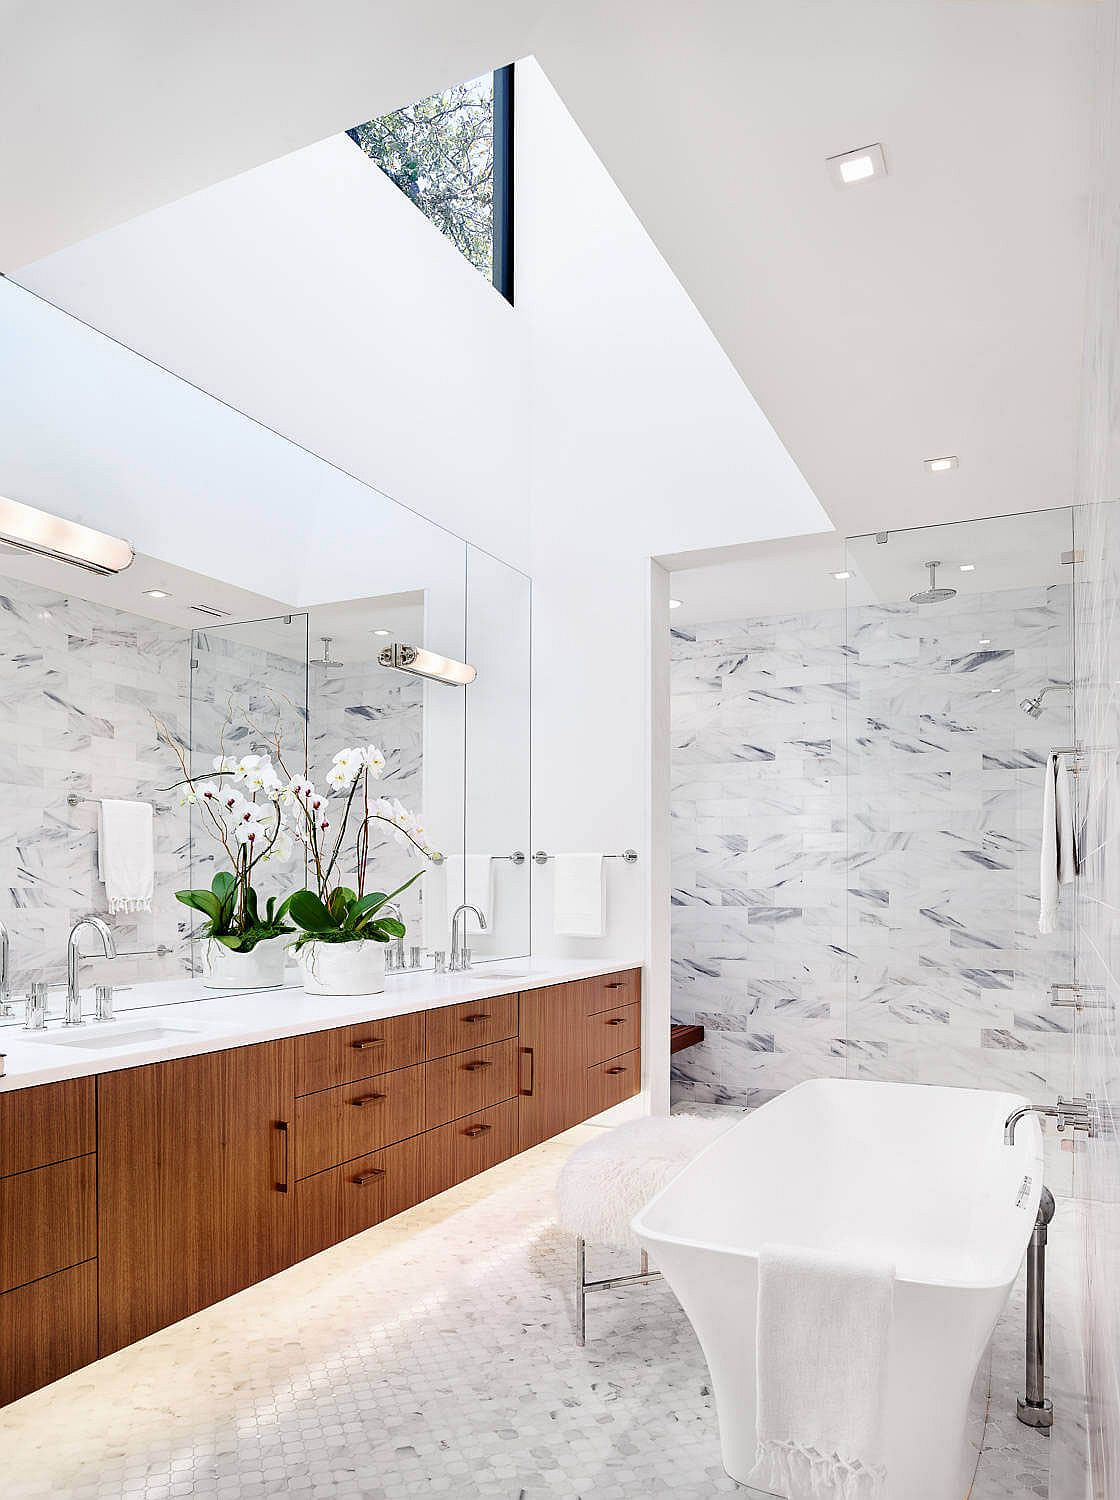 Skylight brings natural ventilation into the luxurious bathroom